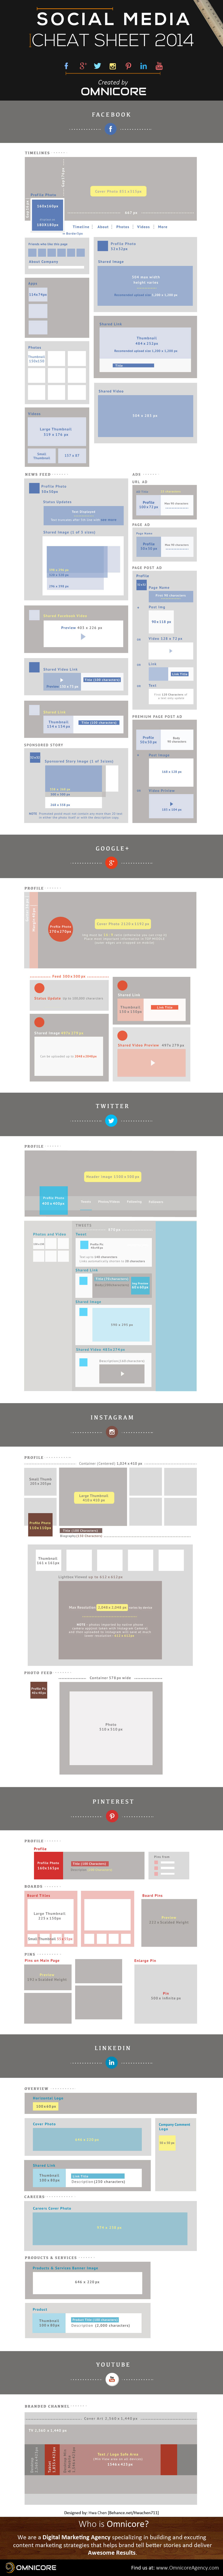 Complete #SocialMedia Sizing Cheat Sheet 2014 - #infographic #design